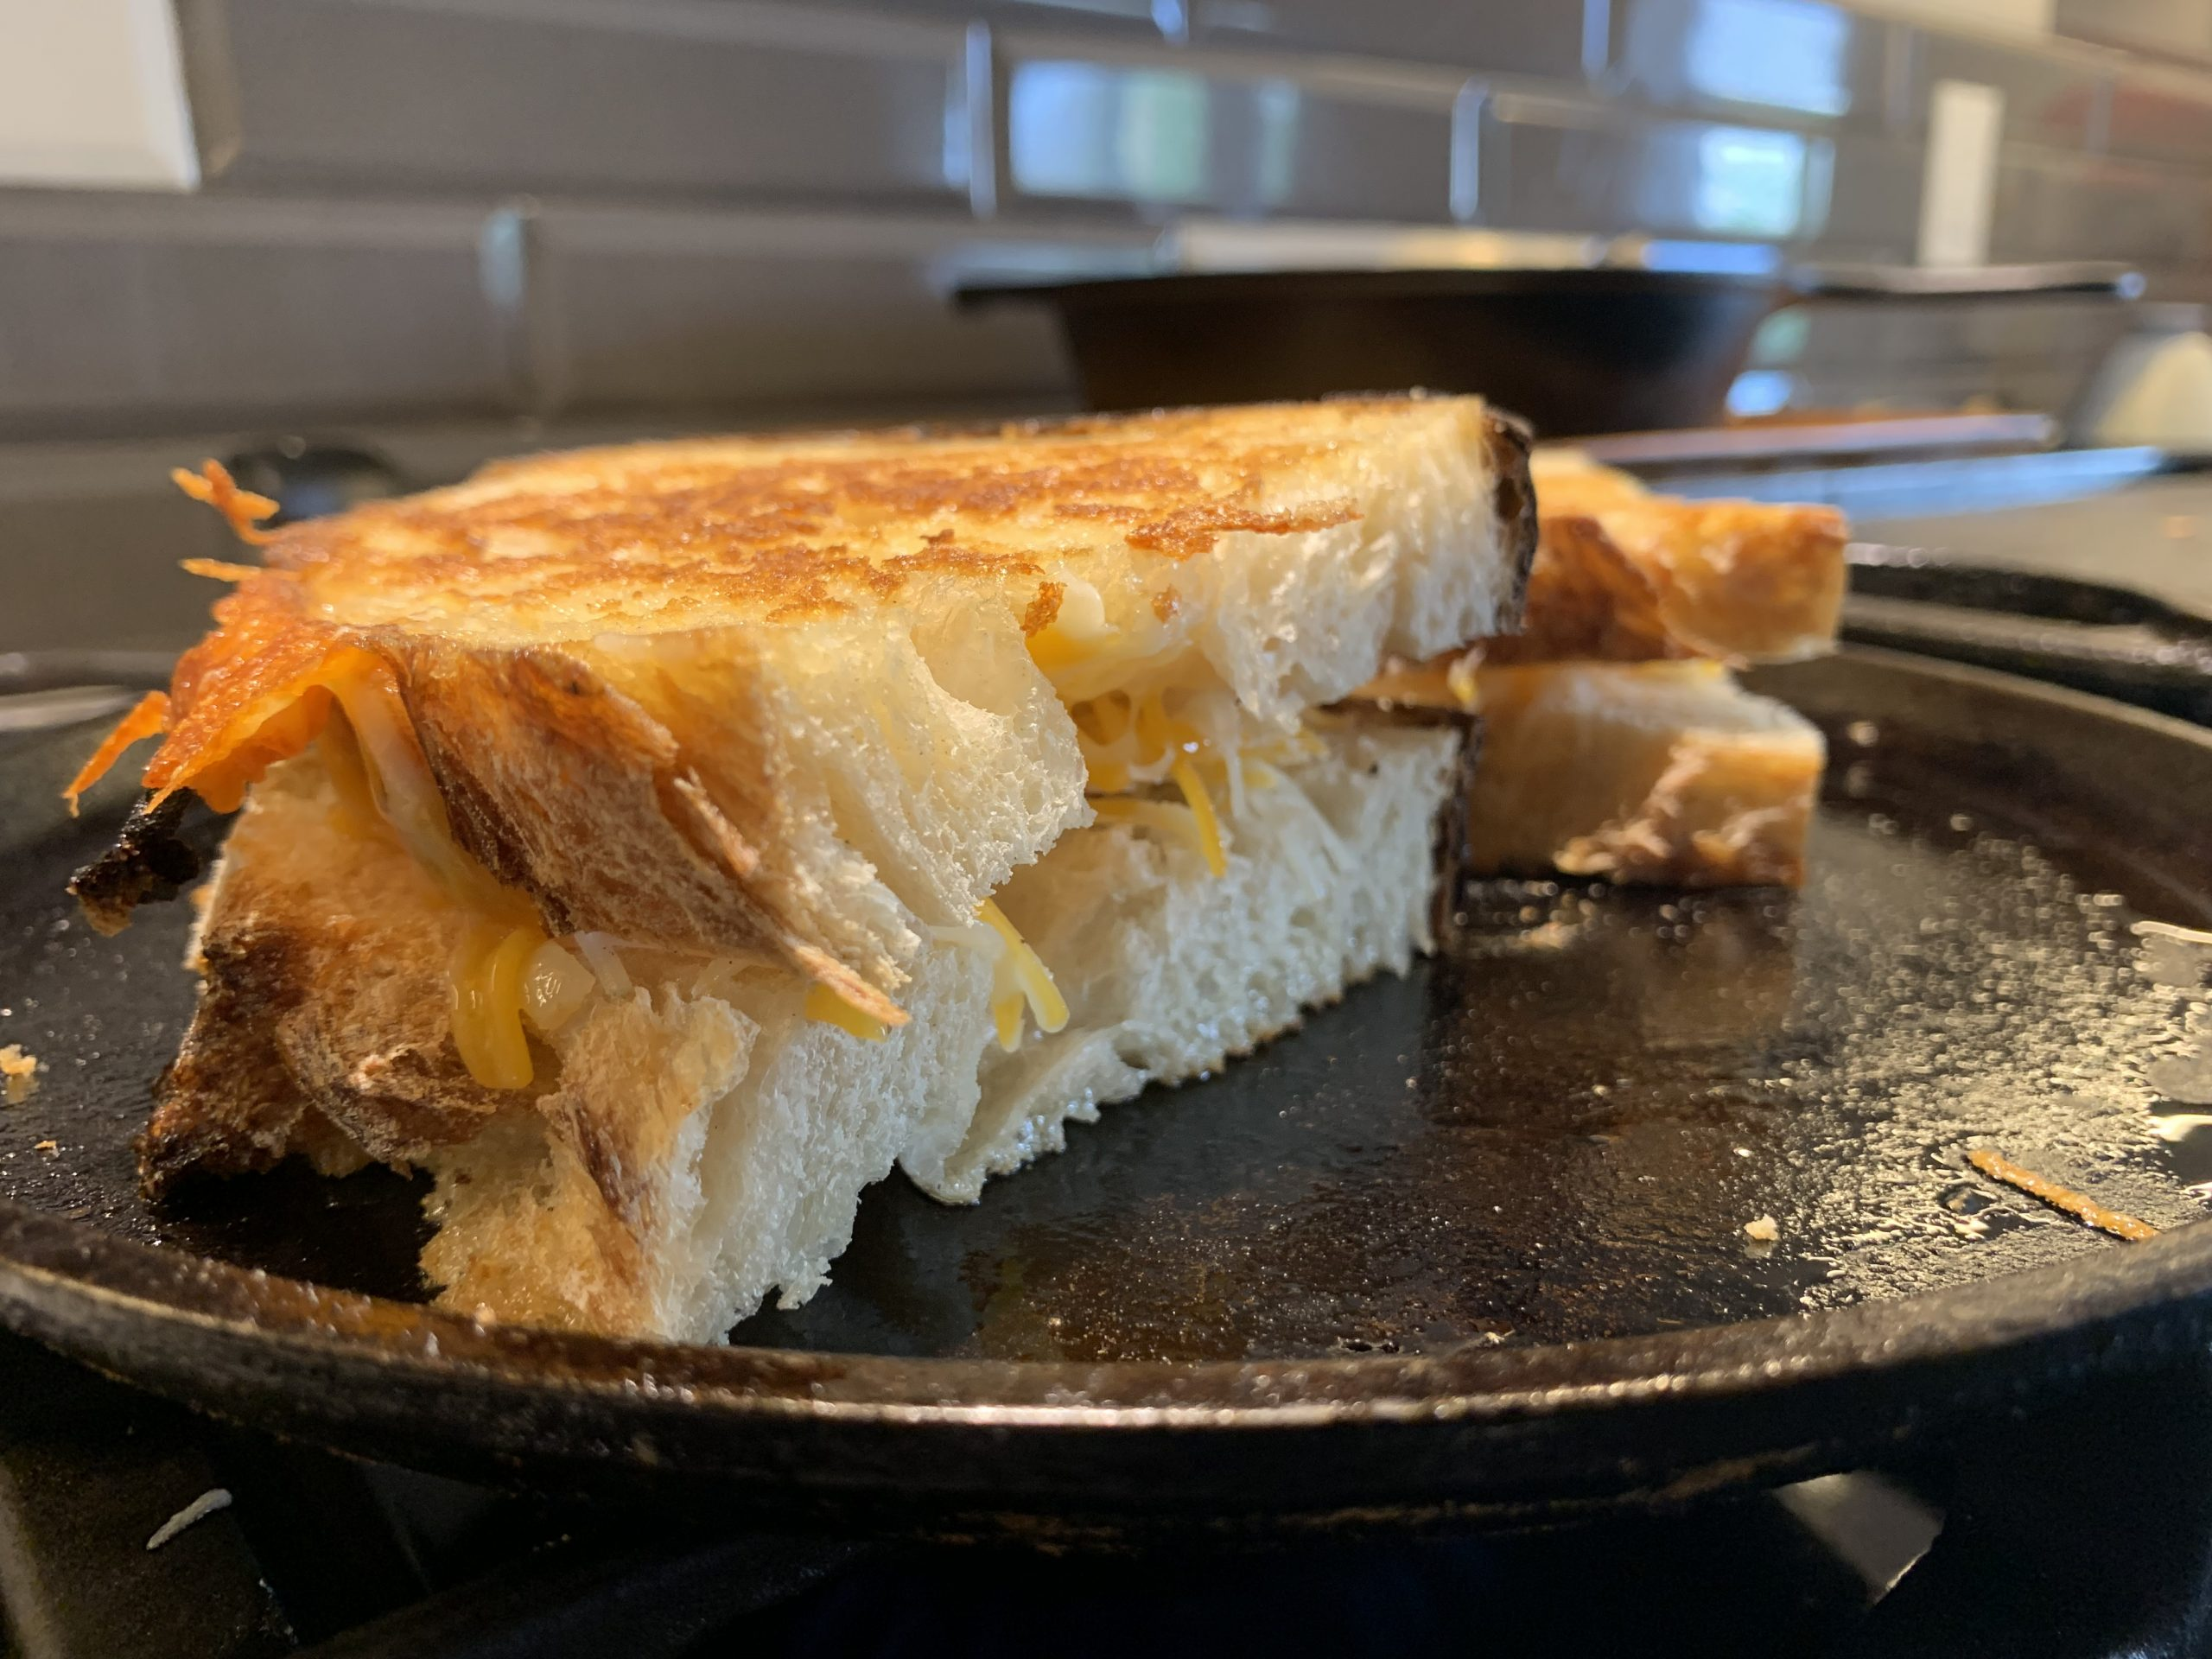 A simple grilled cheese sandwich on a flat cast iron pan.